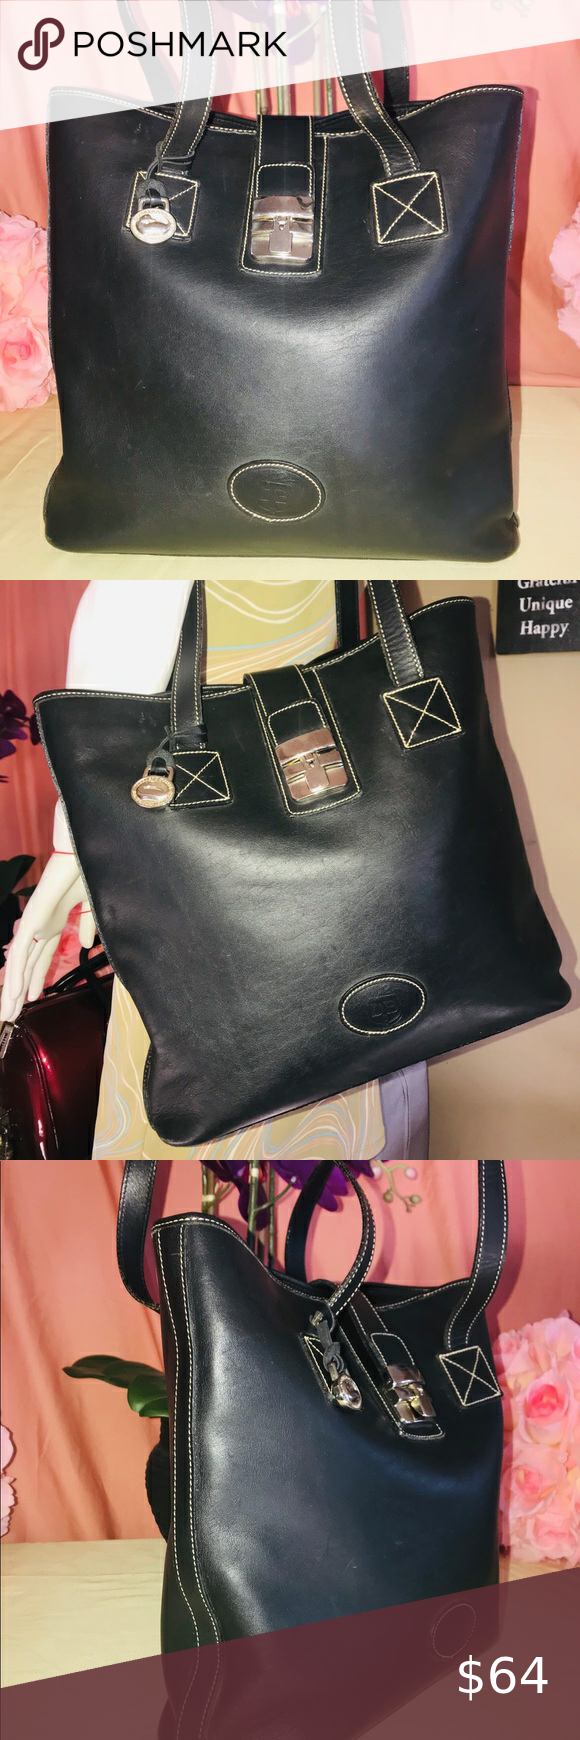 Dooney & Bourke 0909P Black Medium Shopper Bag Dooney & Bourke 0909P Black Medium Shopper Bag In Excellent Preowned Condition   • Silver Hardware  • Flap + Lock Closure • IMPORTANT: Added coffee pouches to remove mild cigarette odor. Will ship with the bag • Normal Signs Of Wear  • No Holes or Tears  • Ship Same or Next Business Day • Reasonable Offers Welcome  • Satisfaction Guaranteed Dooney & Bourke Bags Totes